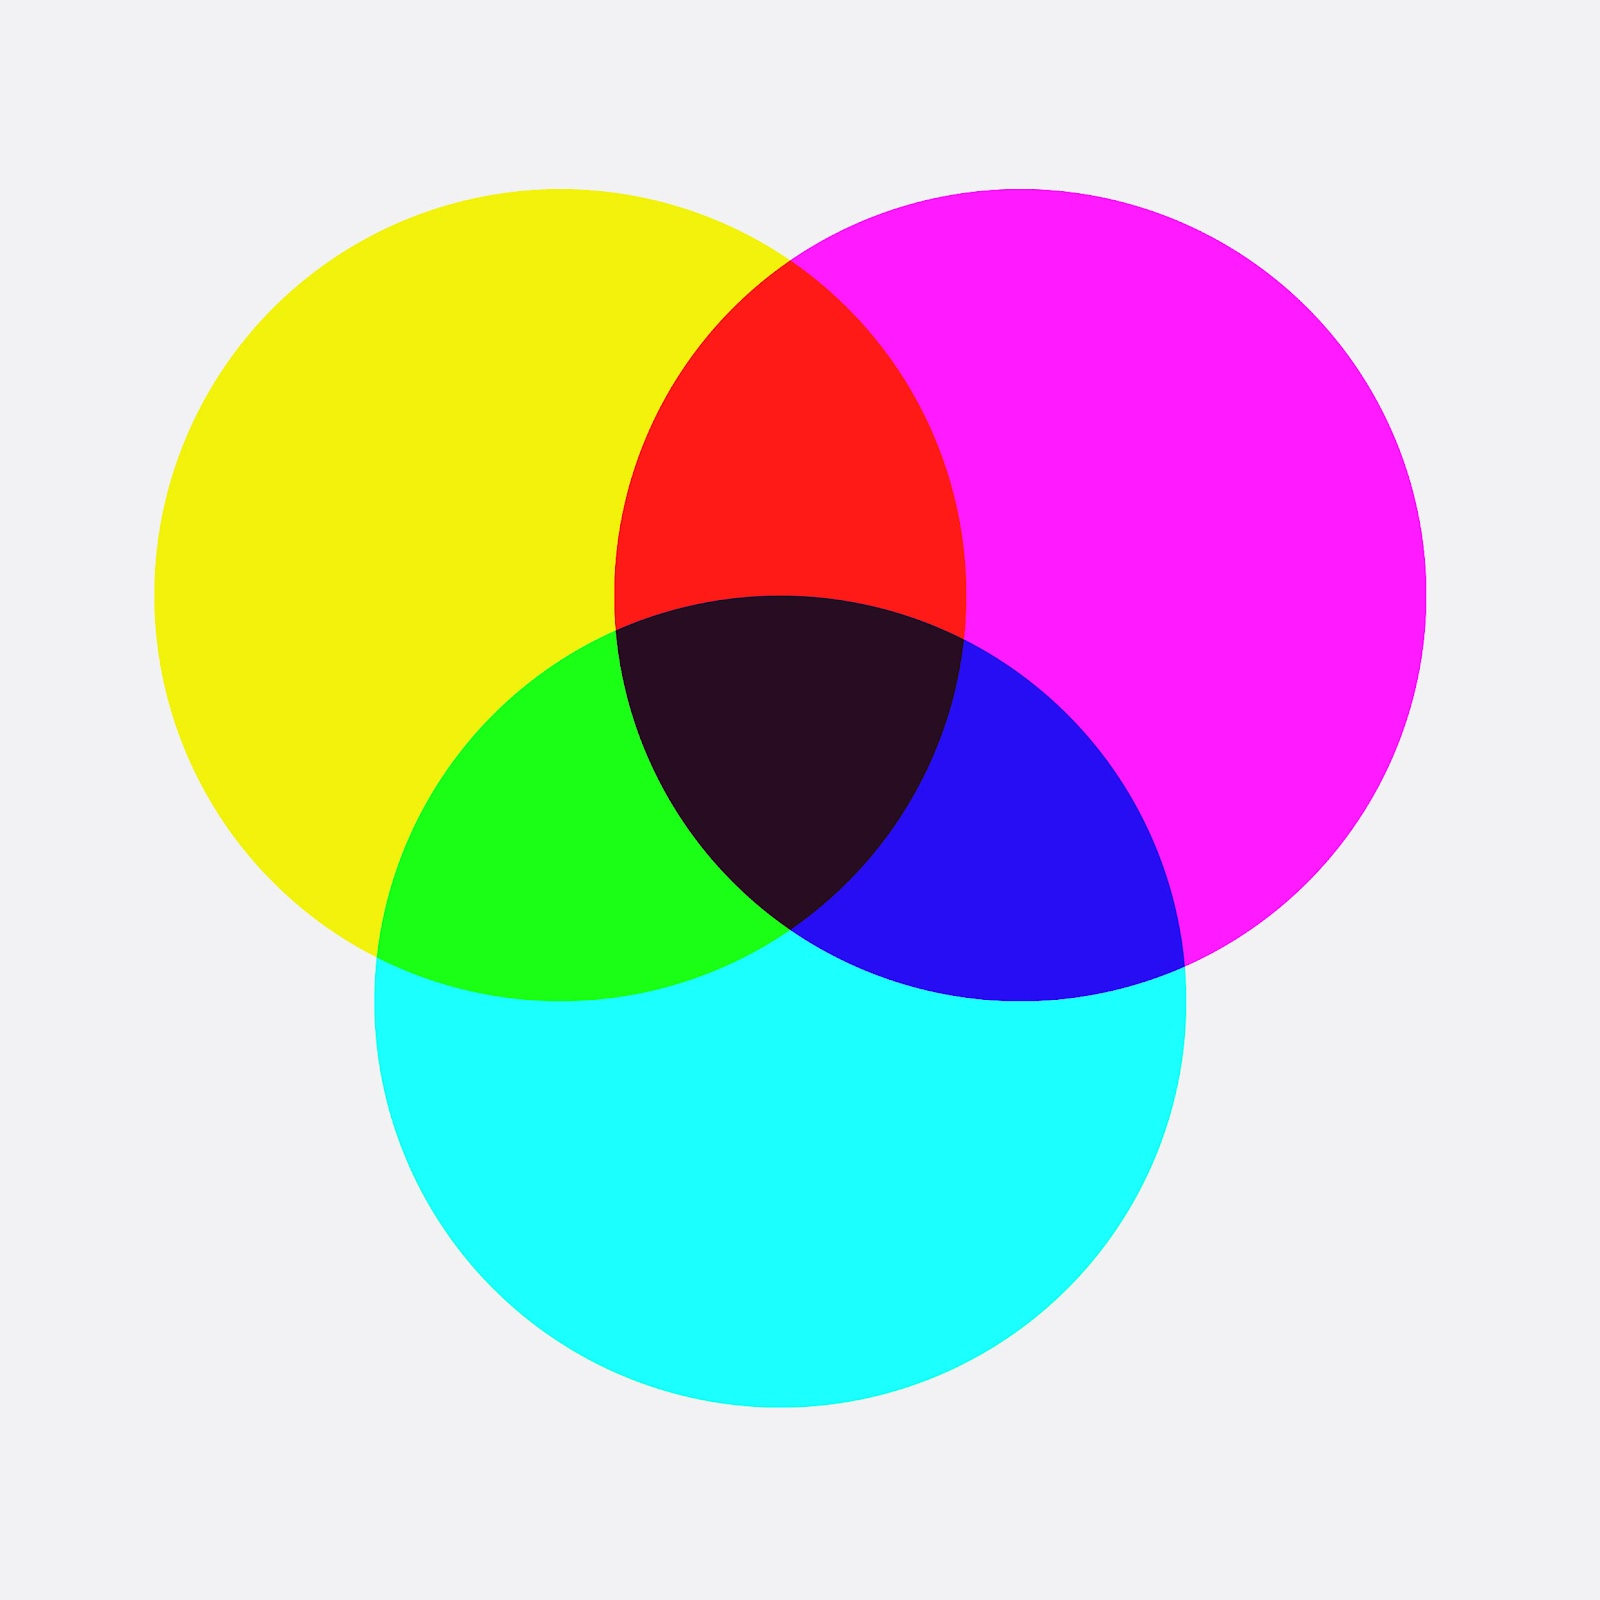 Additive and subtractive colour